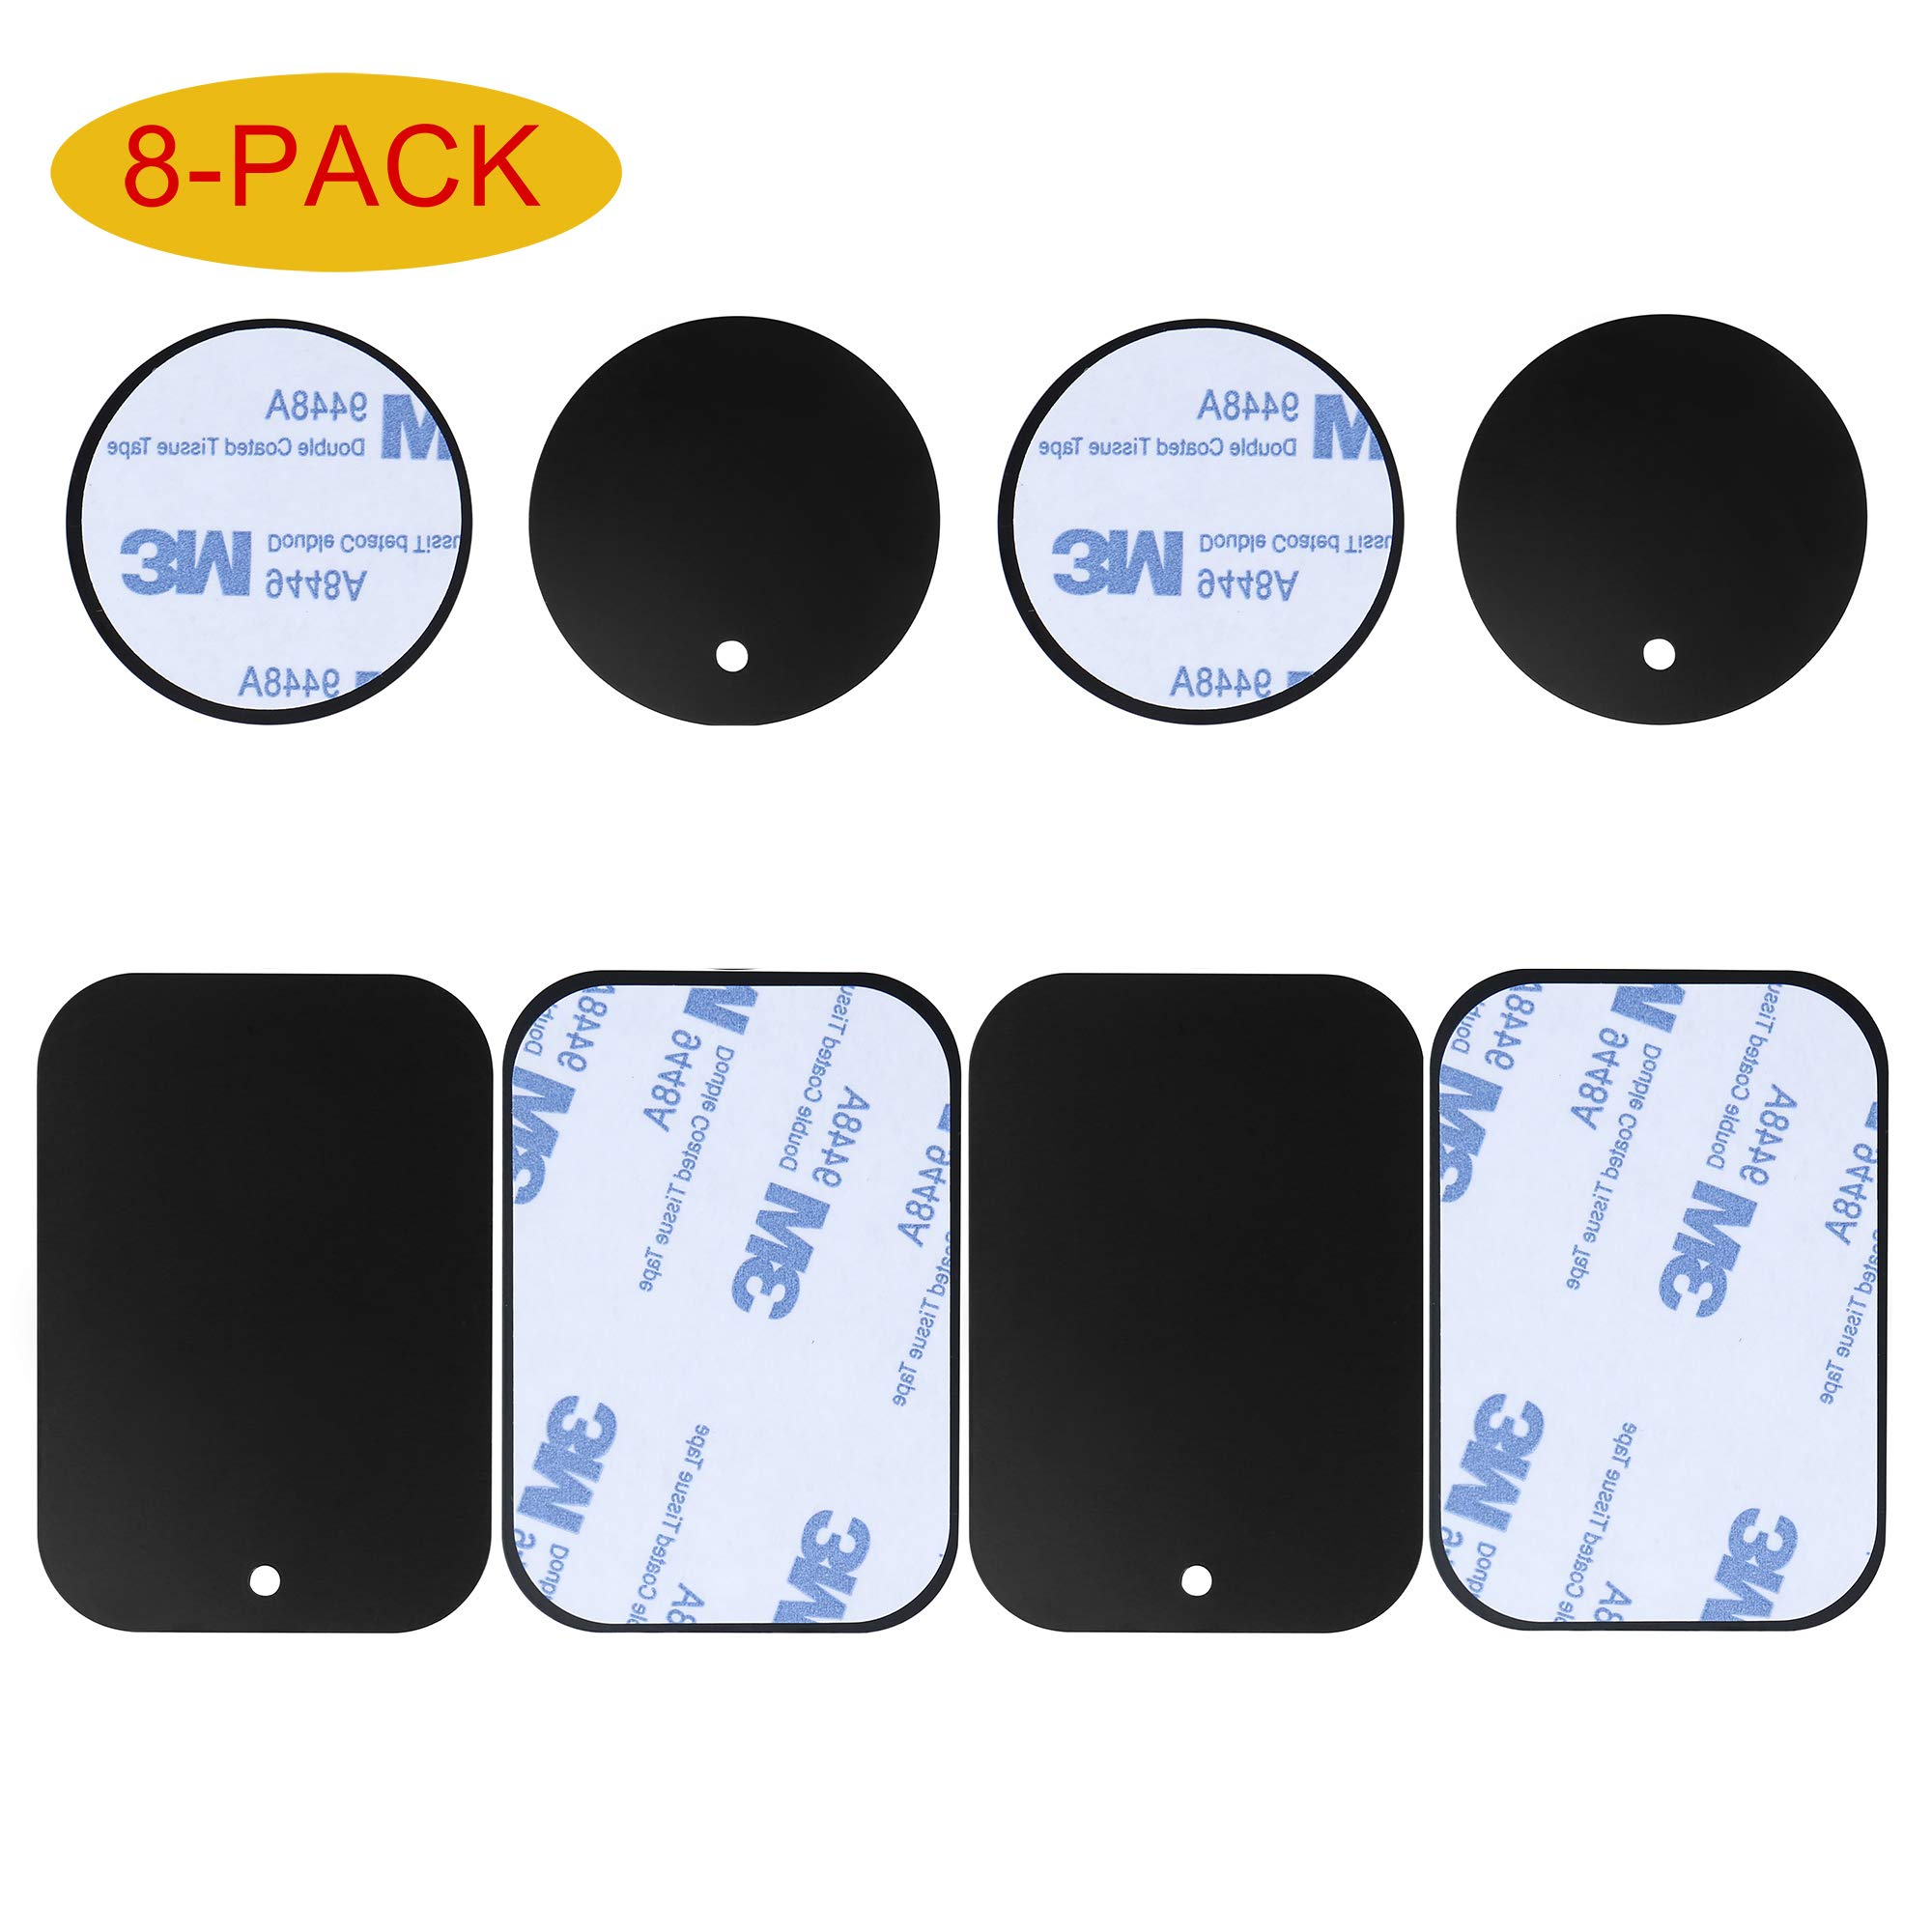 8-Pack Replacement Mount Metal Plates D.Sking Car Phone Holder Iron Plates for Car Mount Car Kits (8-Pack Black) by D.Sking trade Groud (Image #1)